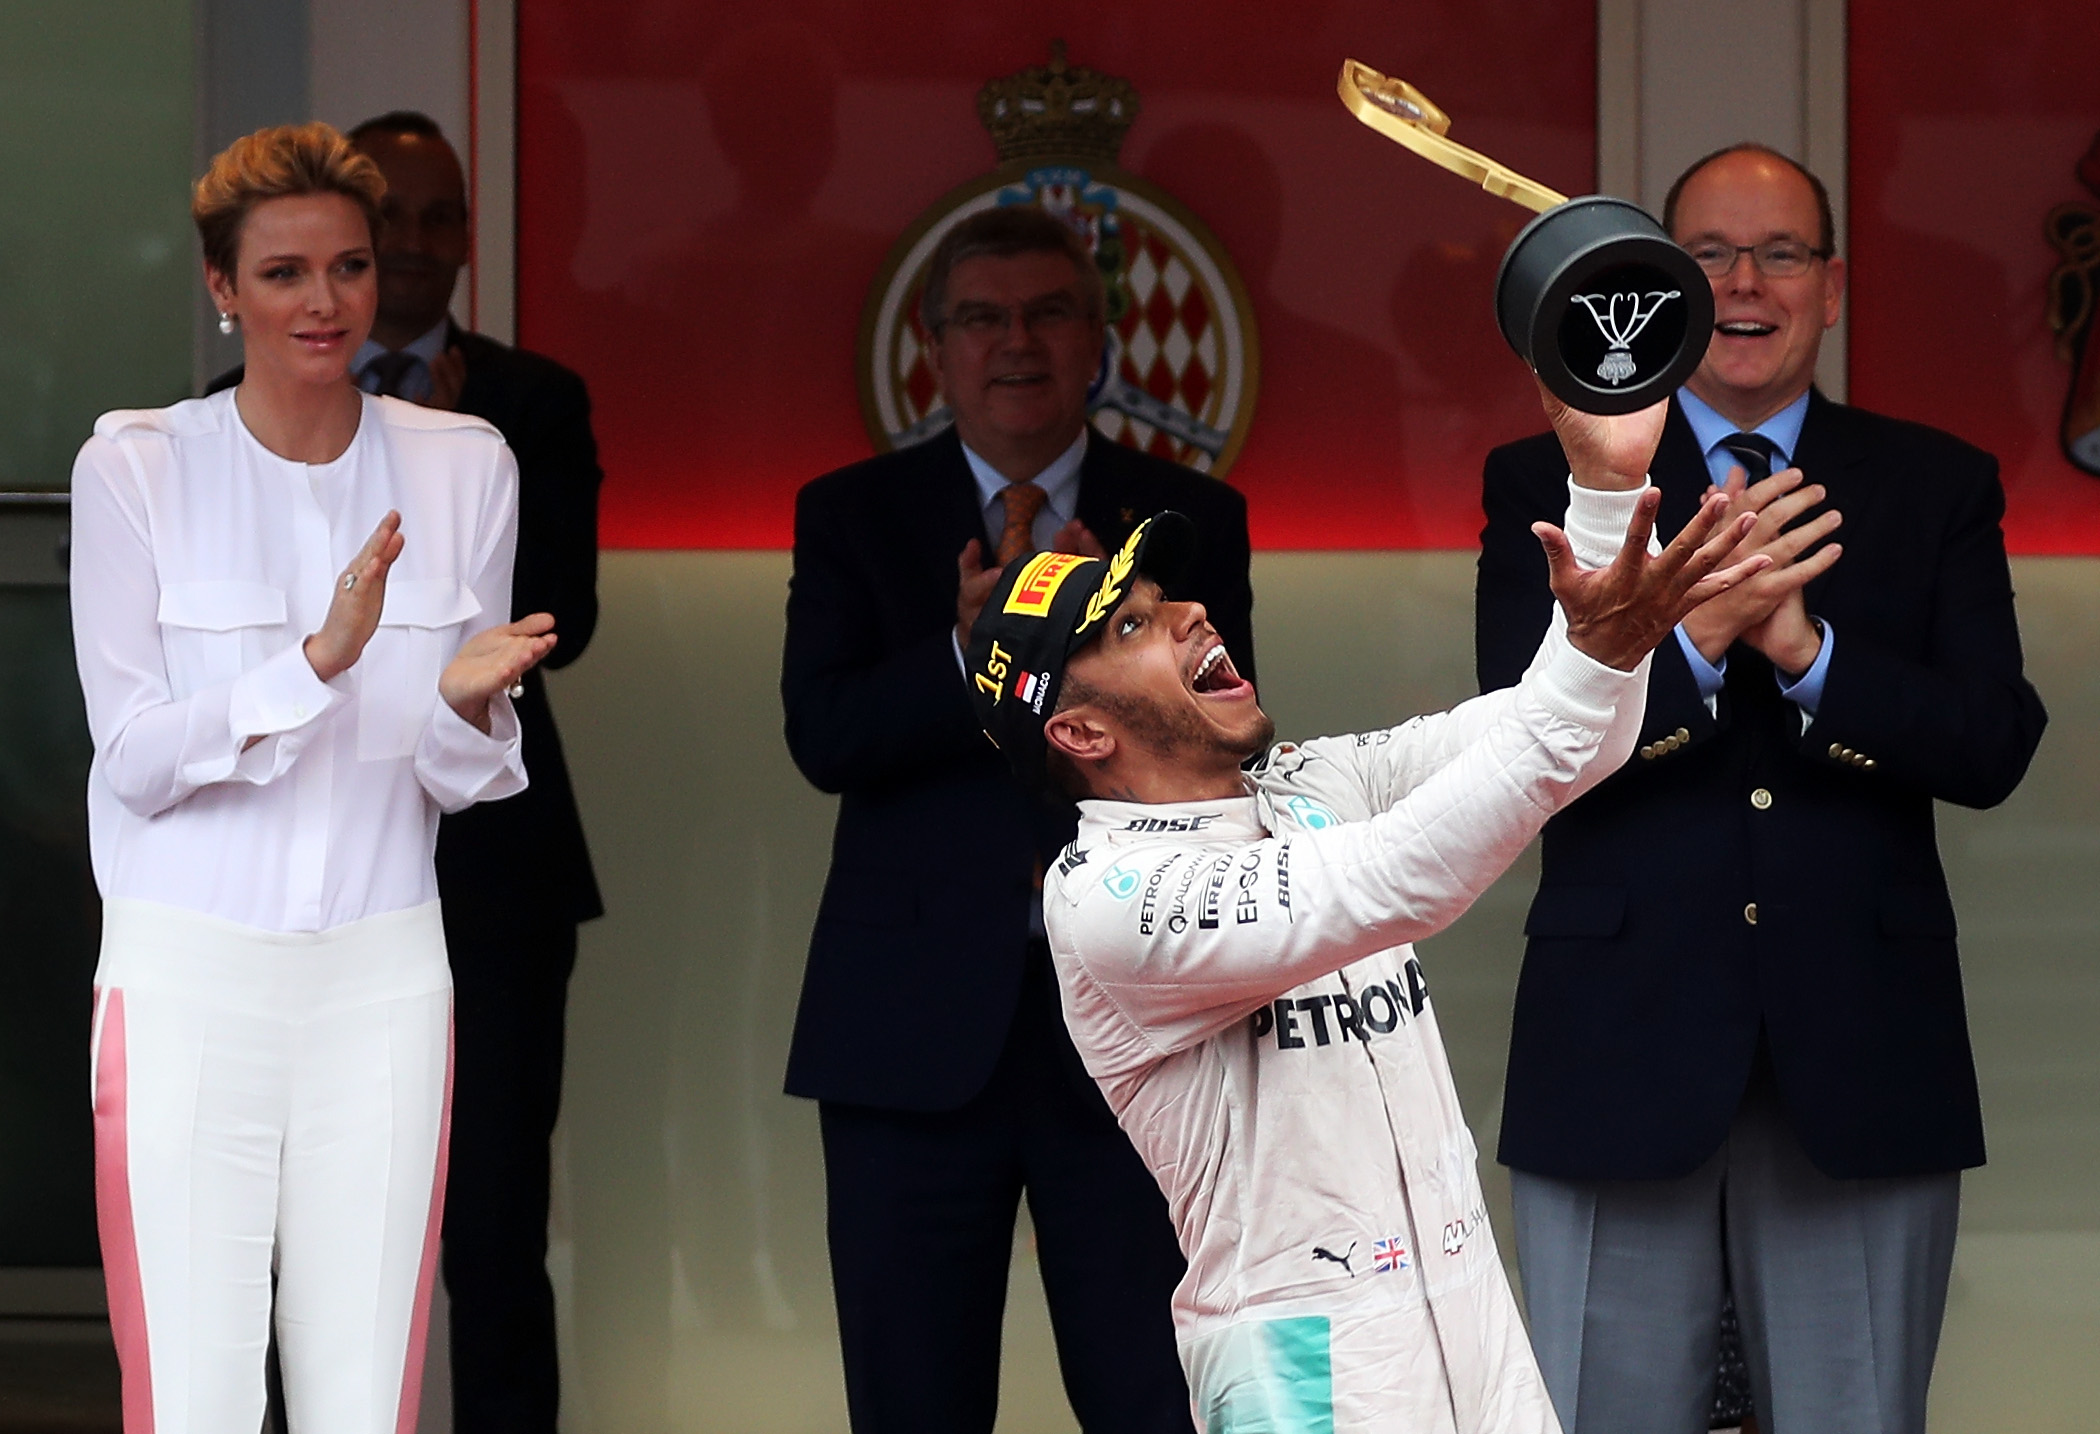 MONTE-CARLO, MONACO - MAY 29: Lewis Hamilton of Great Britain and Mercedes GP celebrates his win on the podium during the Monaco Formula One Grand Prix at Circuit de Monaco on May 29, 2016 in Monte-Carlo, Monaco. (Photo by Lars Baron/Getty Images)